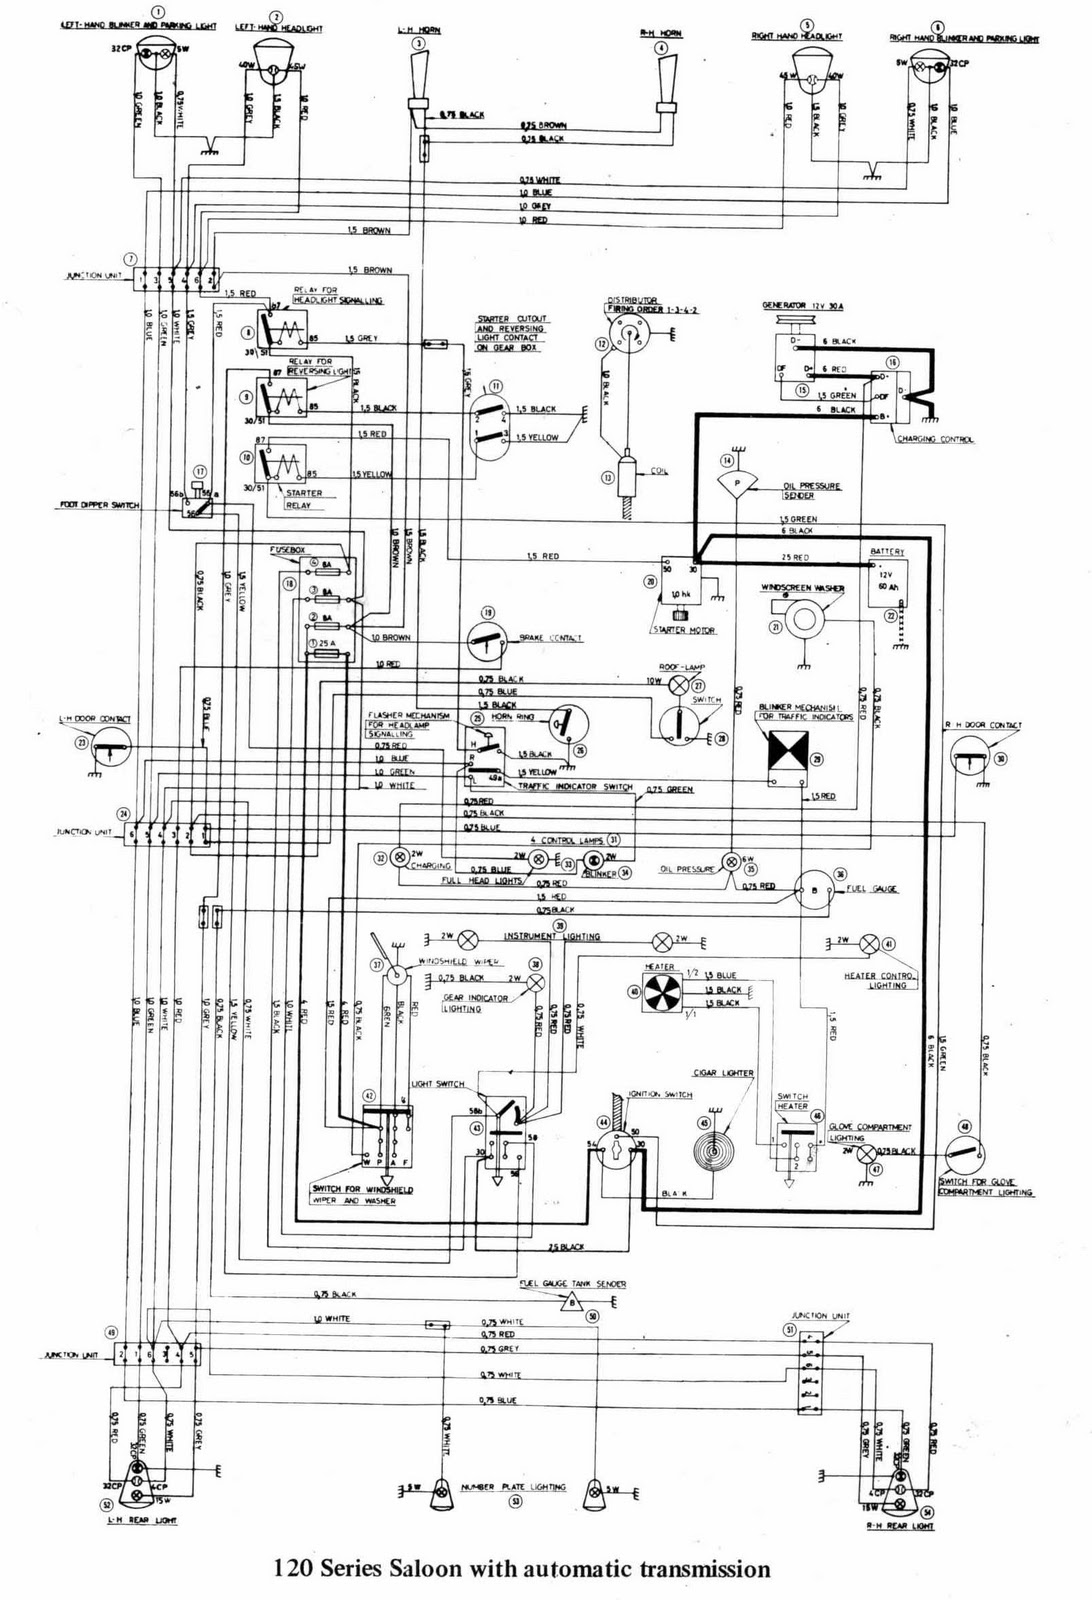 complete wiring diagrams of volvo 122s | all about wiring ... cub cadet 122 wiring diagram